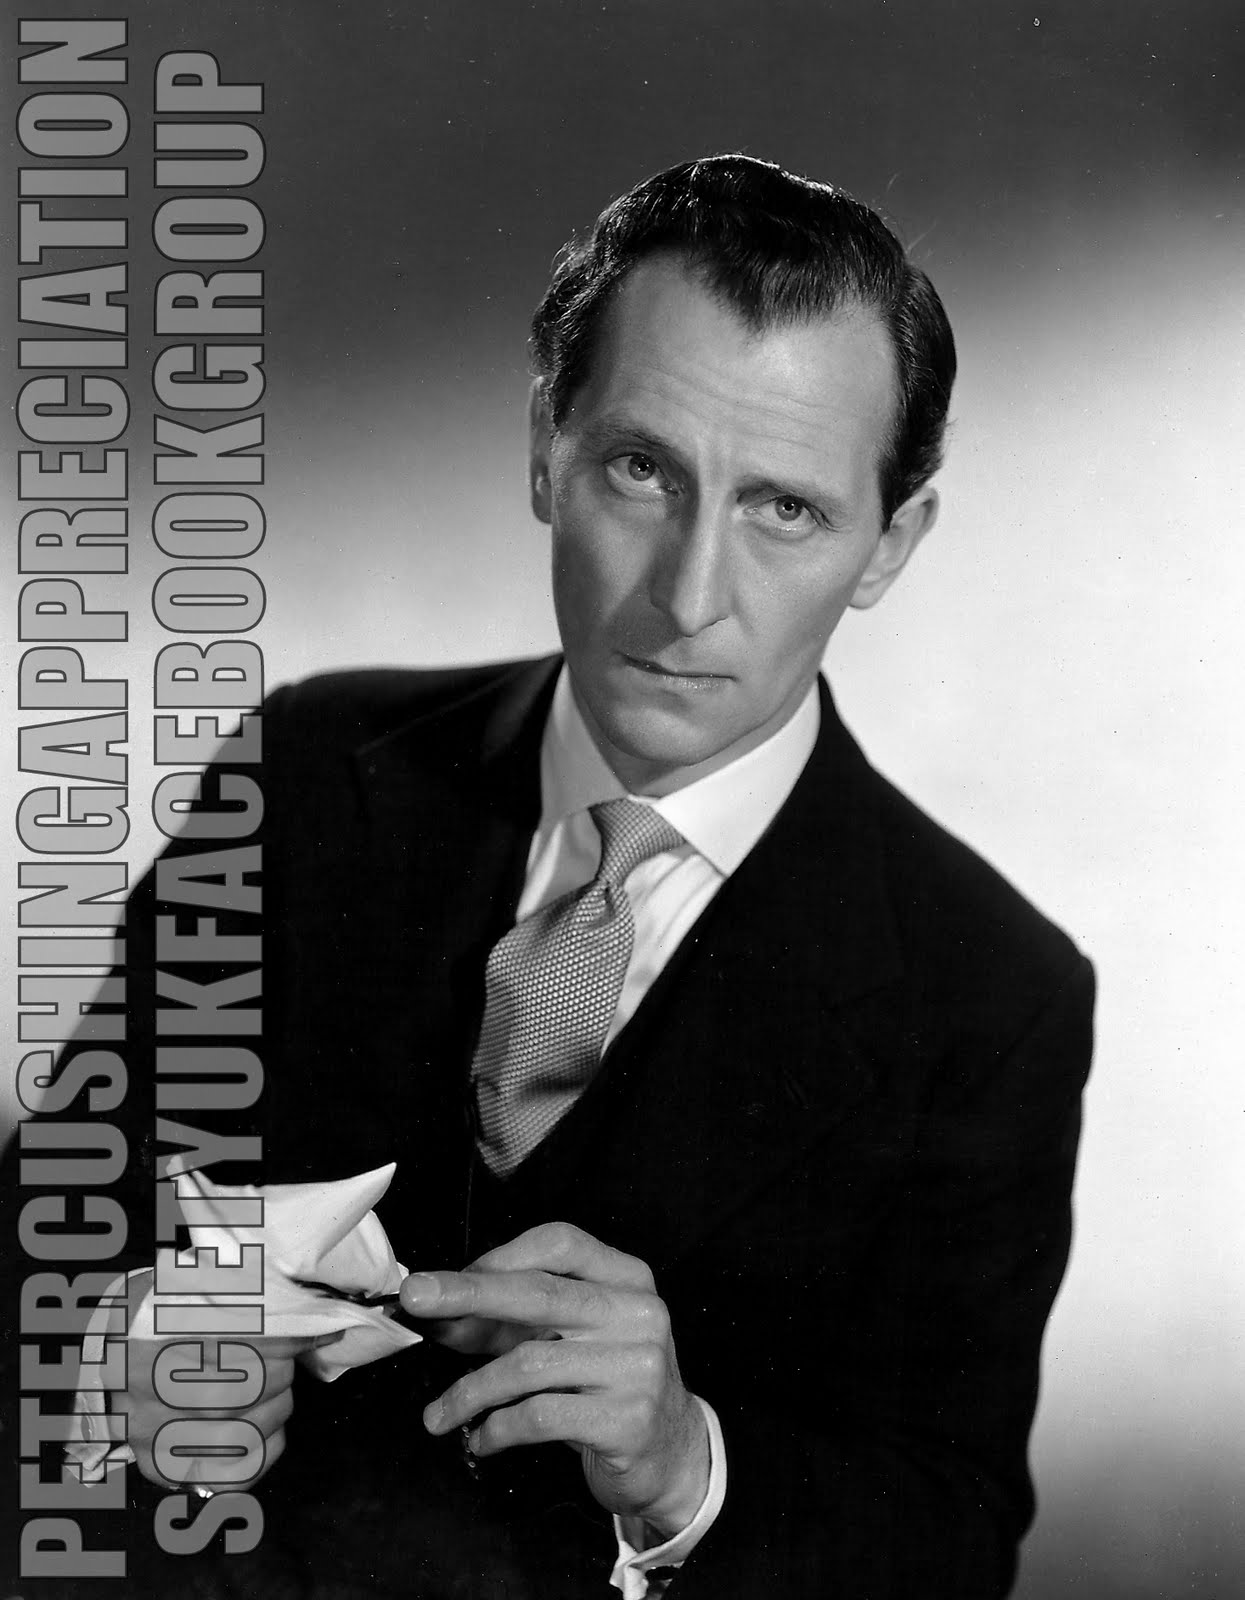 peter cushing heightpeter cushing star wars, peter cushing sherlock holmes, peter cushing young, peter cushing van helsing, peter cushing height, peter cushing lives in whitstable, peter cushing in rogue one, peter cushing gif, peter cushing 1984, peter cushing doctor, peter cushing top secret, peter cushing lives in whitstable lyrics, peter cushing tarkin, peter cushing accent, peter cushing 2016, peter cushing star trek, peter cushing lives in whitstable qi, peter cushing mask, peter cushing wife, peter cushing star wars rogue one